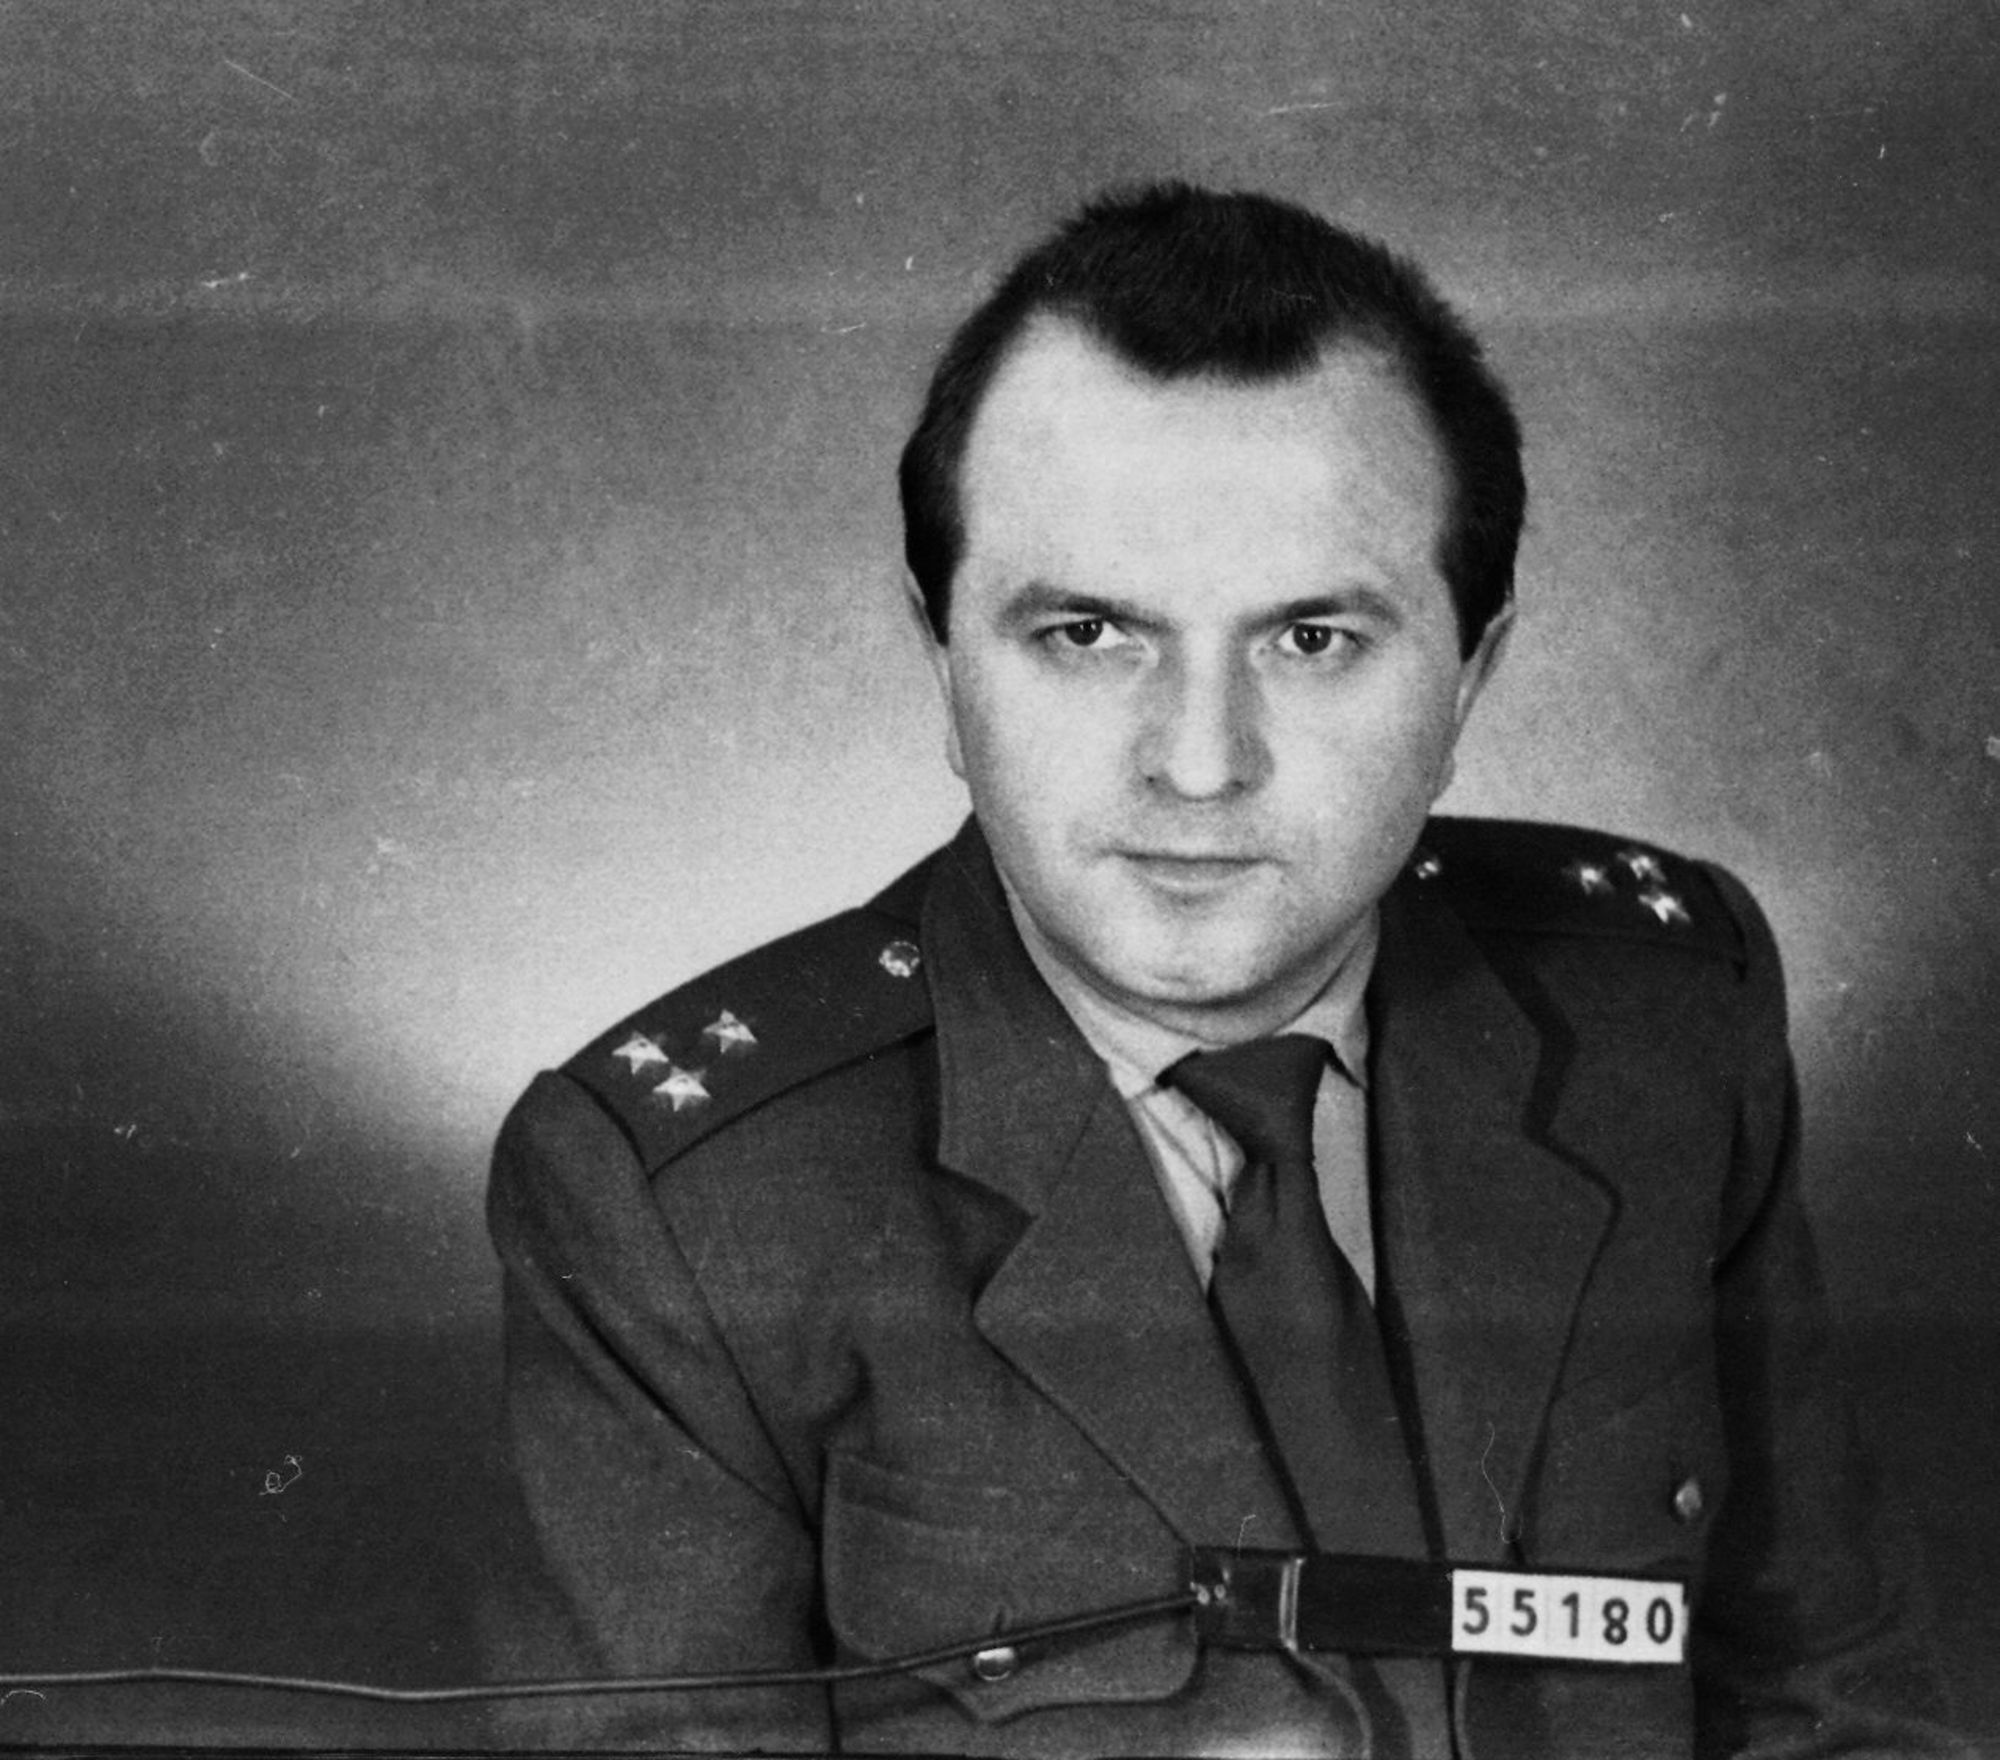 Major StB Vratislav Herold in the 1960s